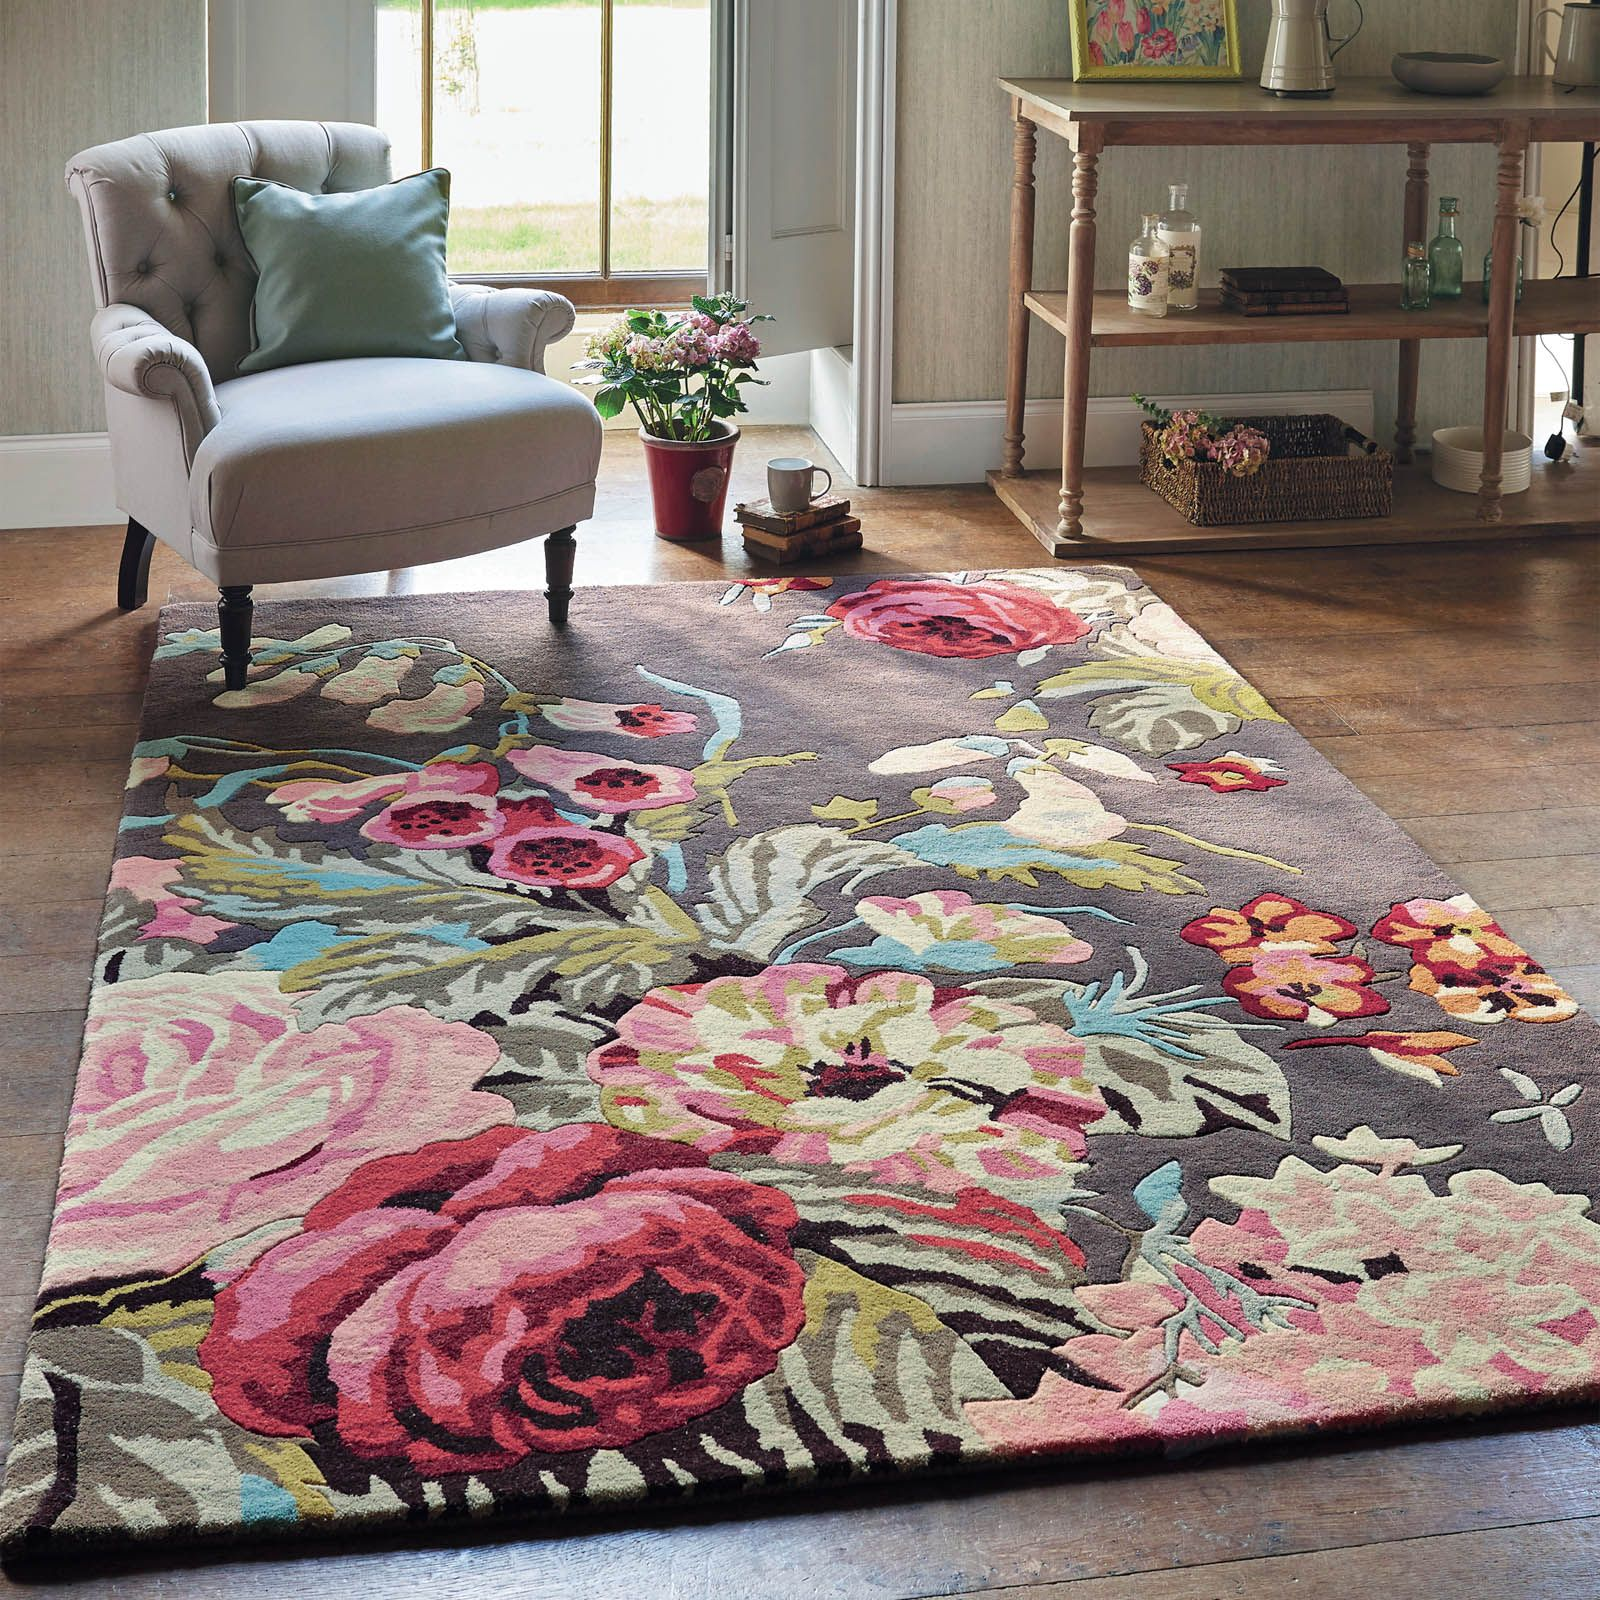 floral rug wool jardiniere embroidered colored rugs bookmark modern htm chic